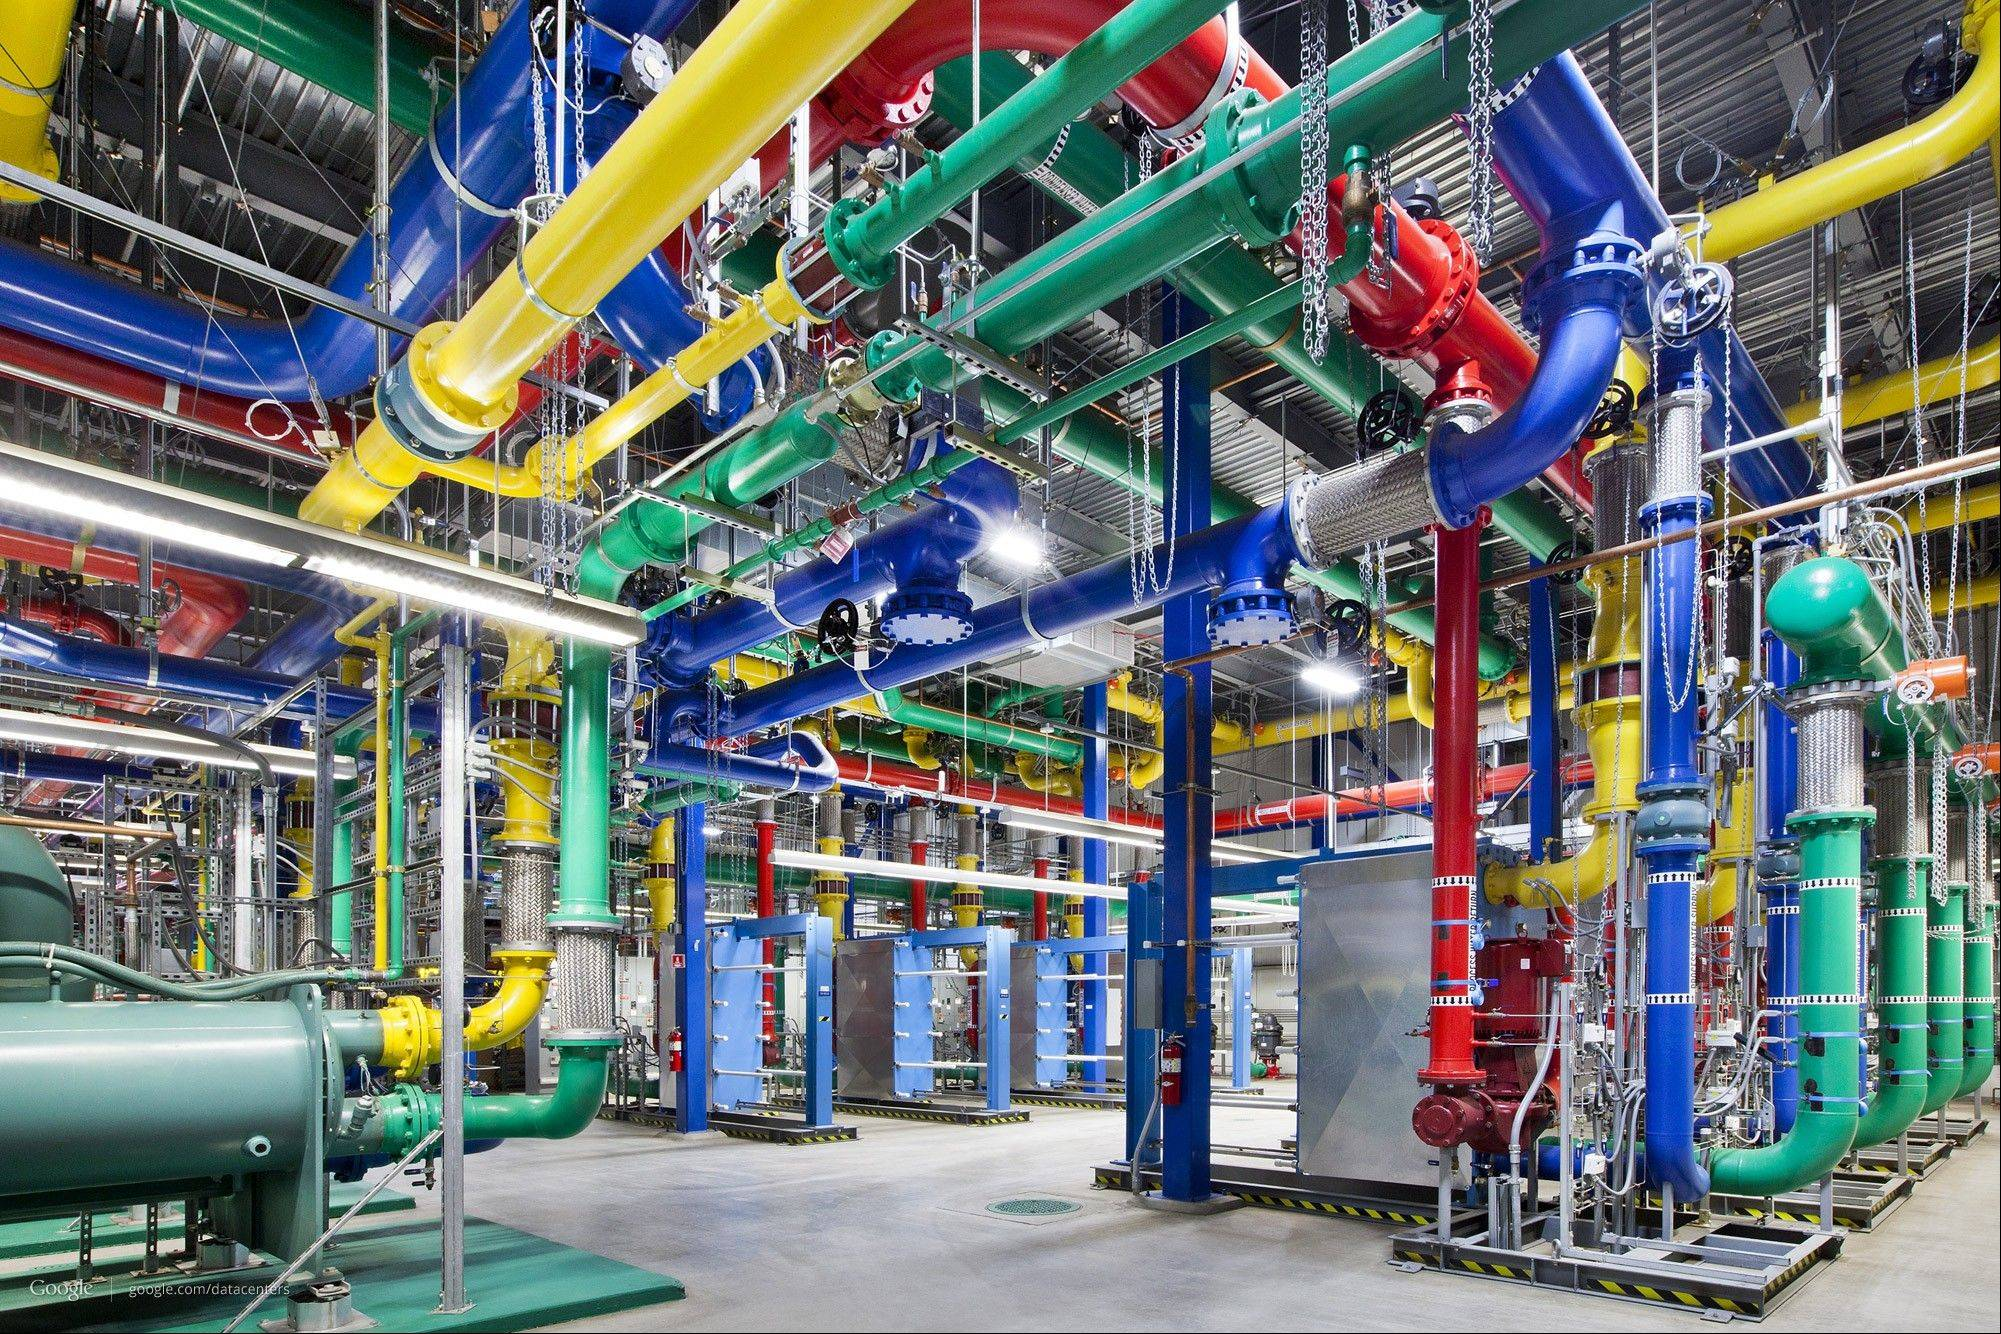 Colorful pipes network to send and receive water for cooling Google's data center in The Dalles, Ore.